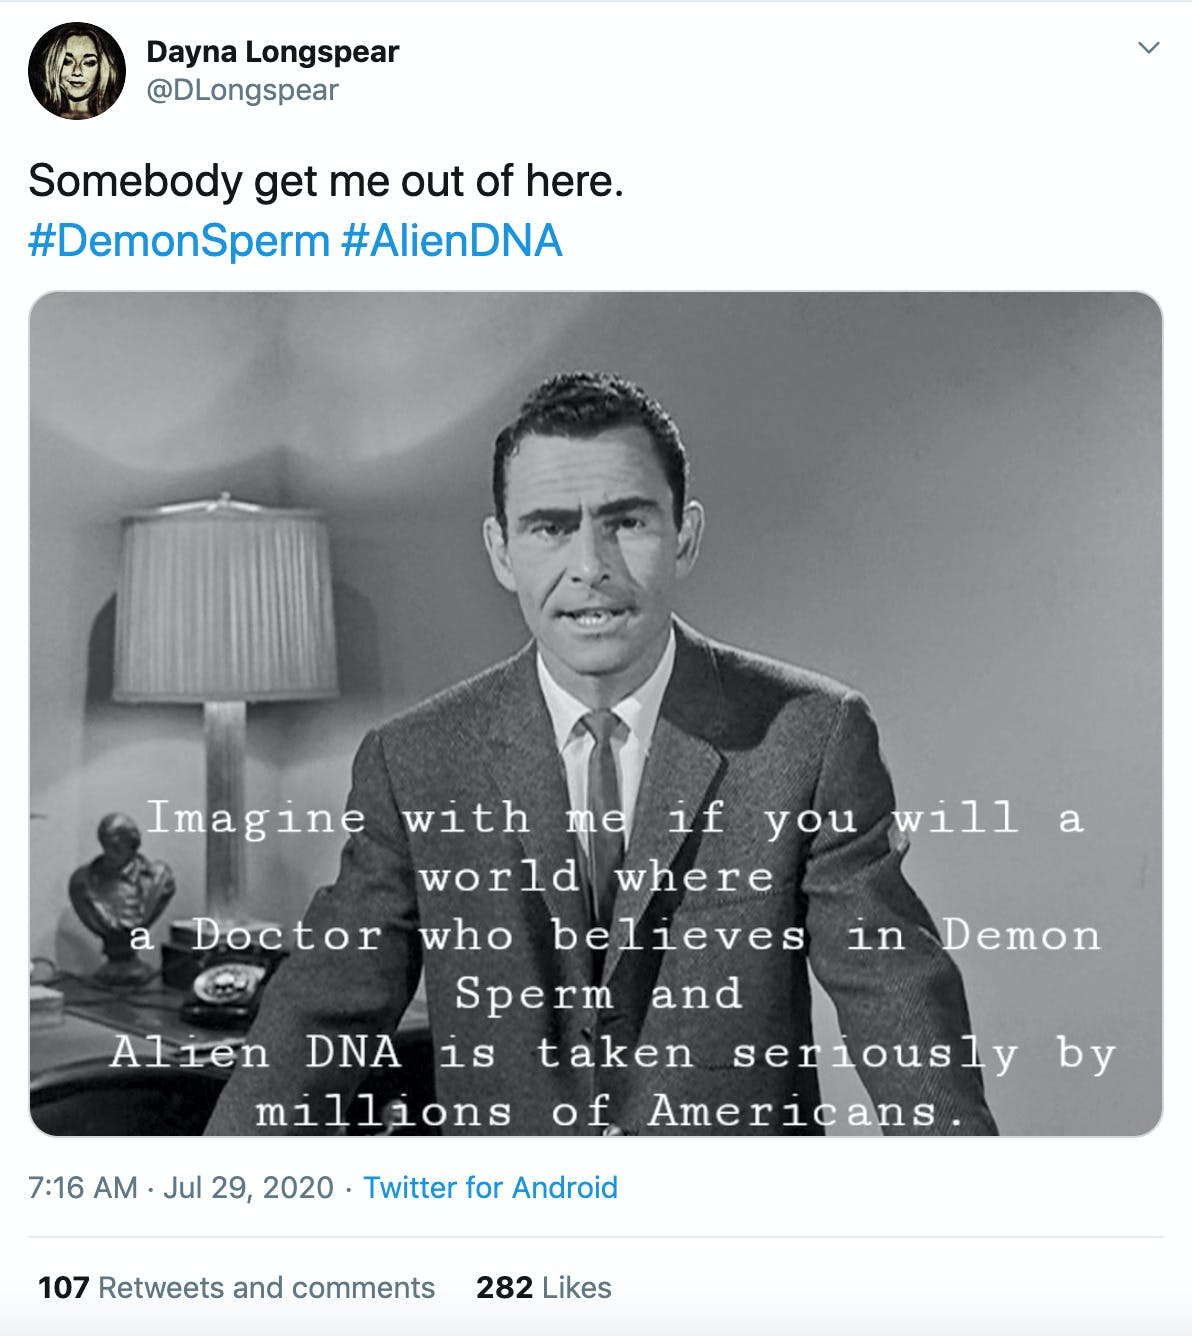 """""""Somebody get me out of here. #DemonSperm #AlienDNA"""" image of the narrator from the Twilight Zone saying """"imagine with me if you will a world where a doctor believes in demen semen and alien DNA and is taken seriously by millions of Americans"""""""